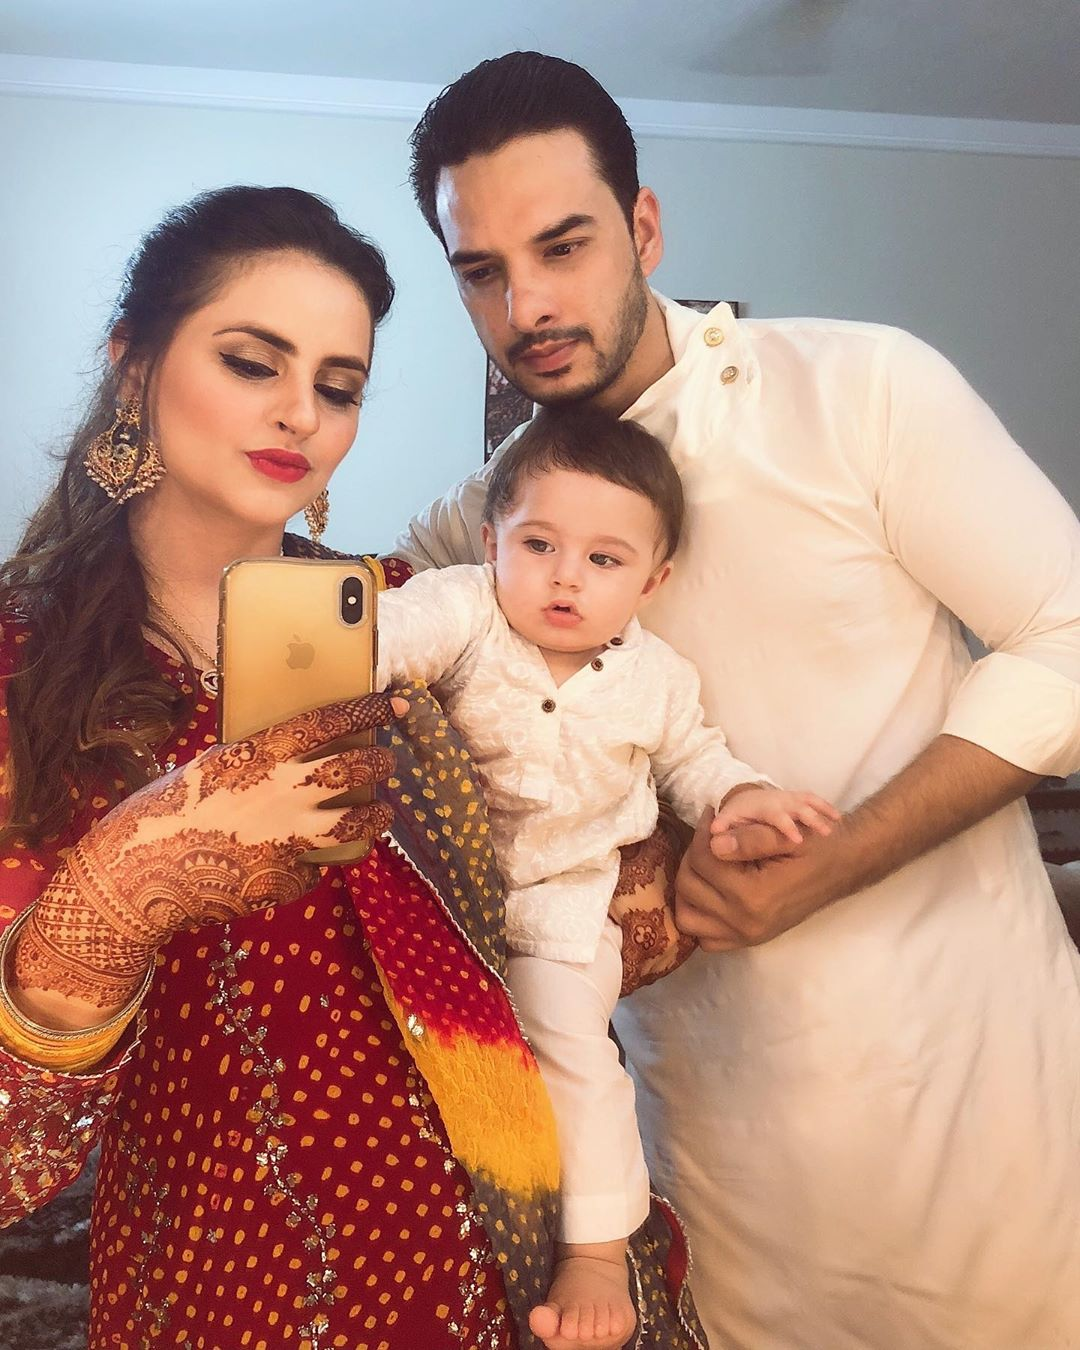 Gorgeous Fatima Efffendi with her family | Check Clicks